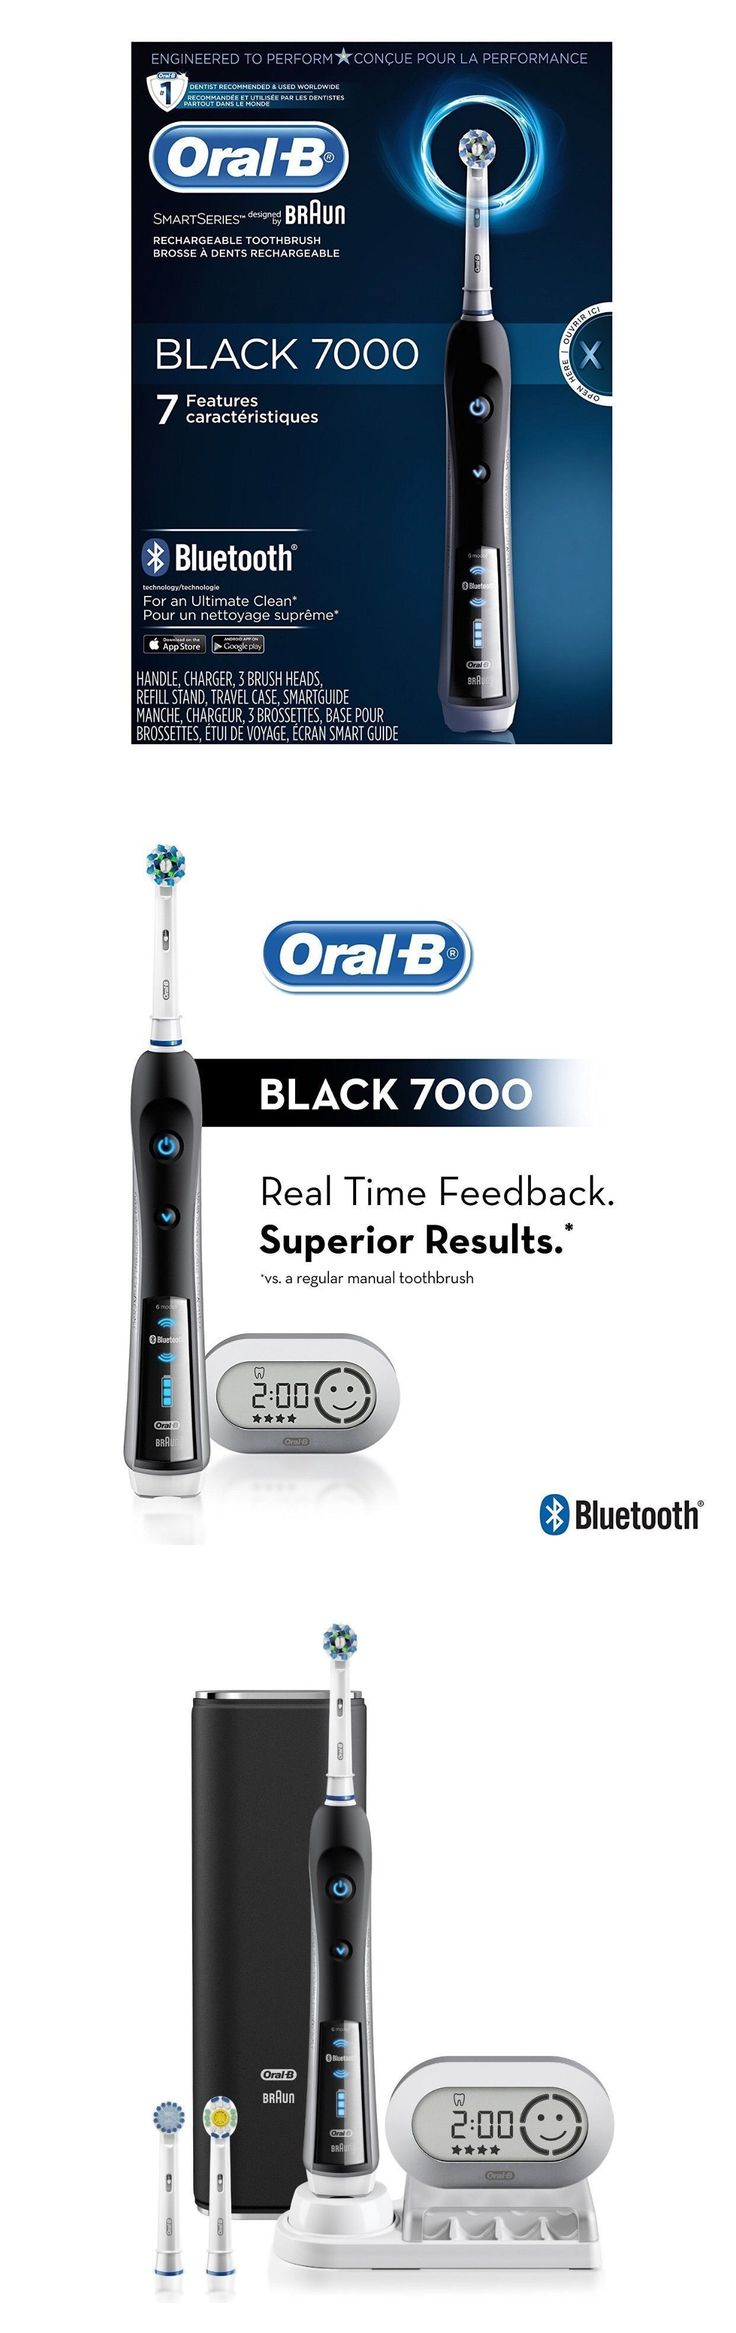 Electric Toothbrushes: Oral-B Precision Black 7000 Rechargeable Electric Toothbrush Brand New Sealed -> BUY IT NOW ONLY: $109.95 on eBay!